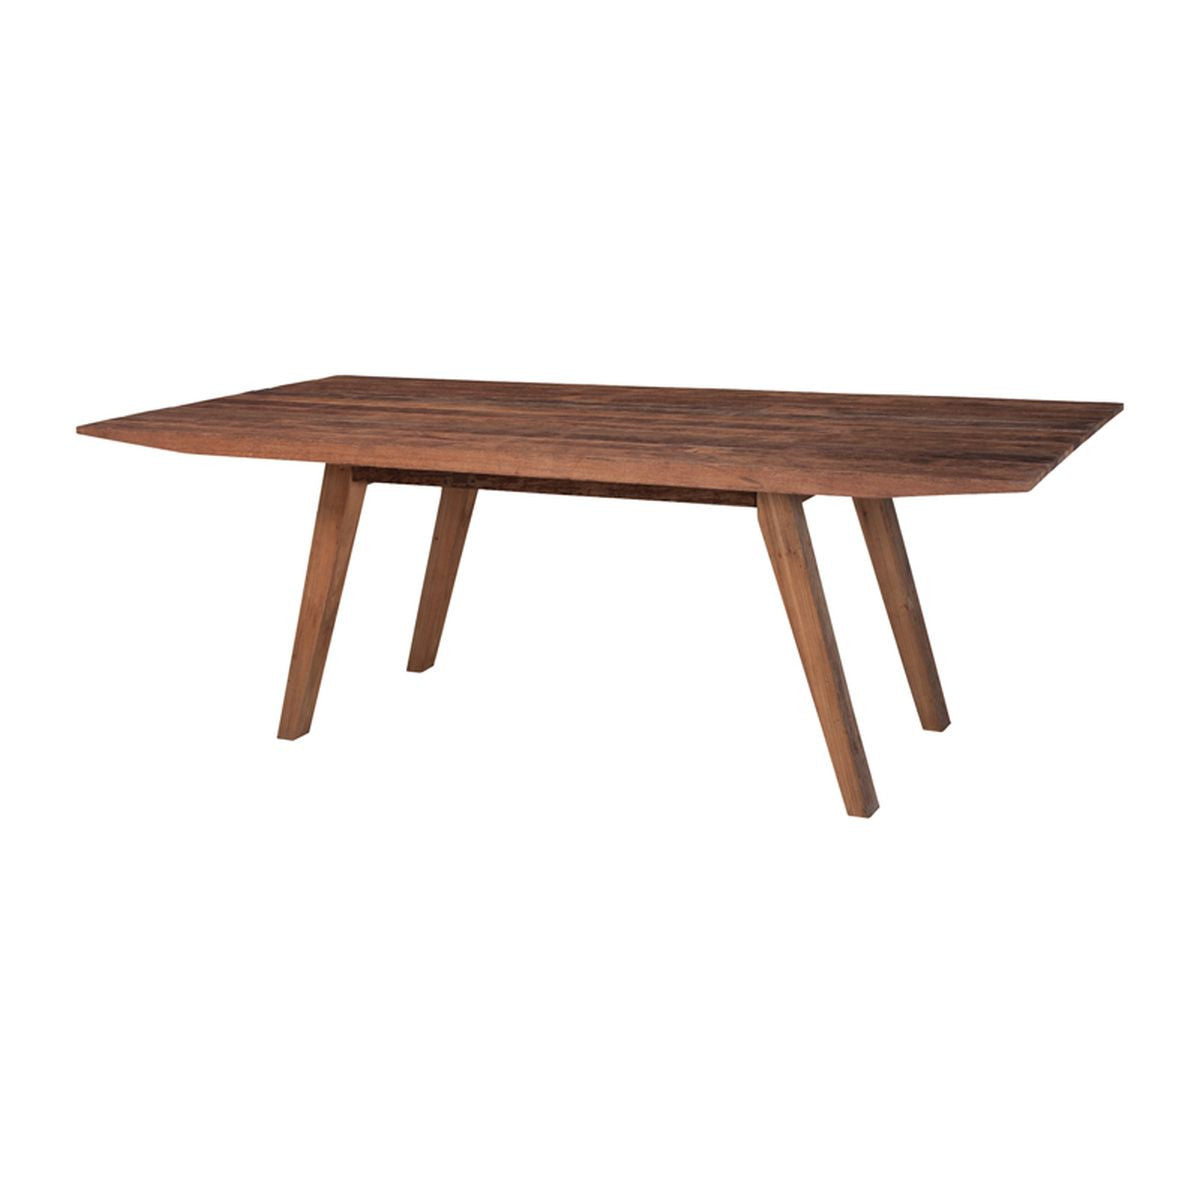 Reclaimed Wood Rectangle Dining Table design by Burke Decor Home